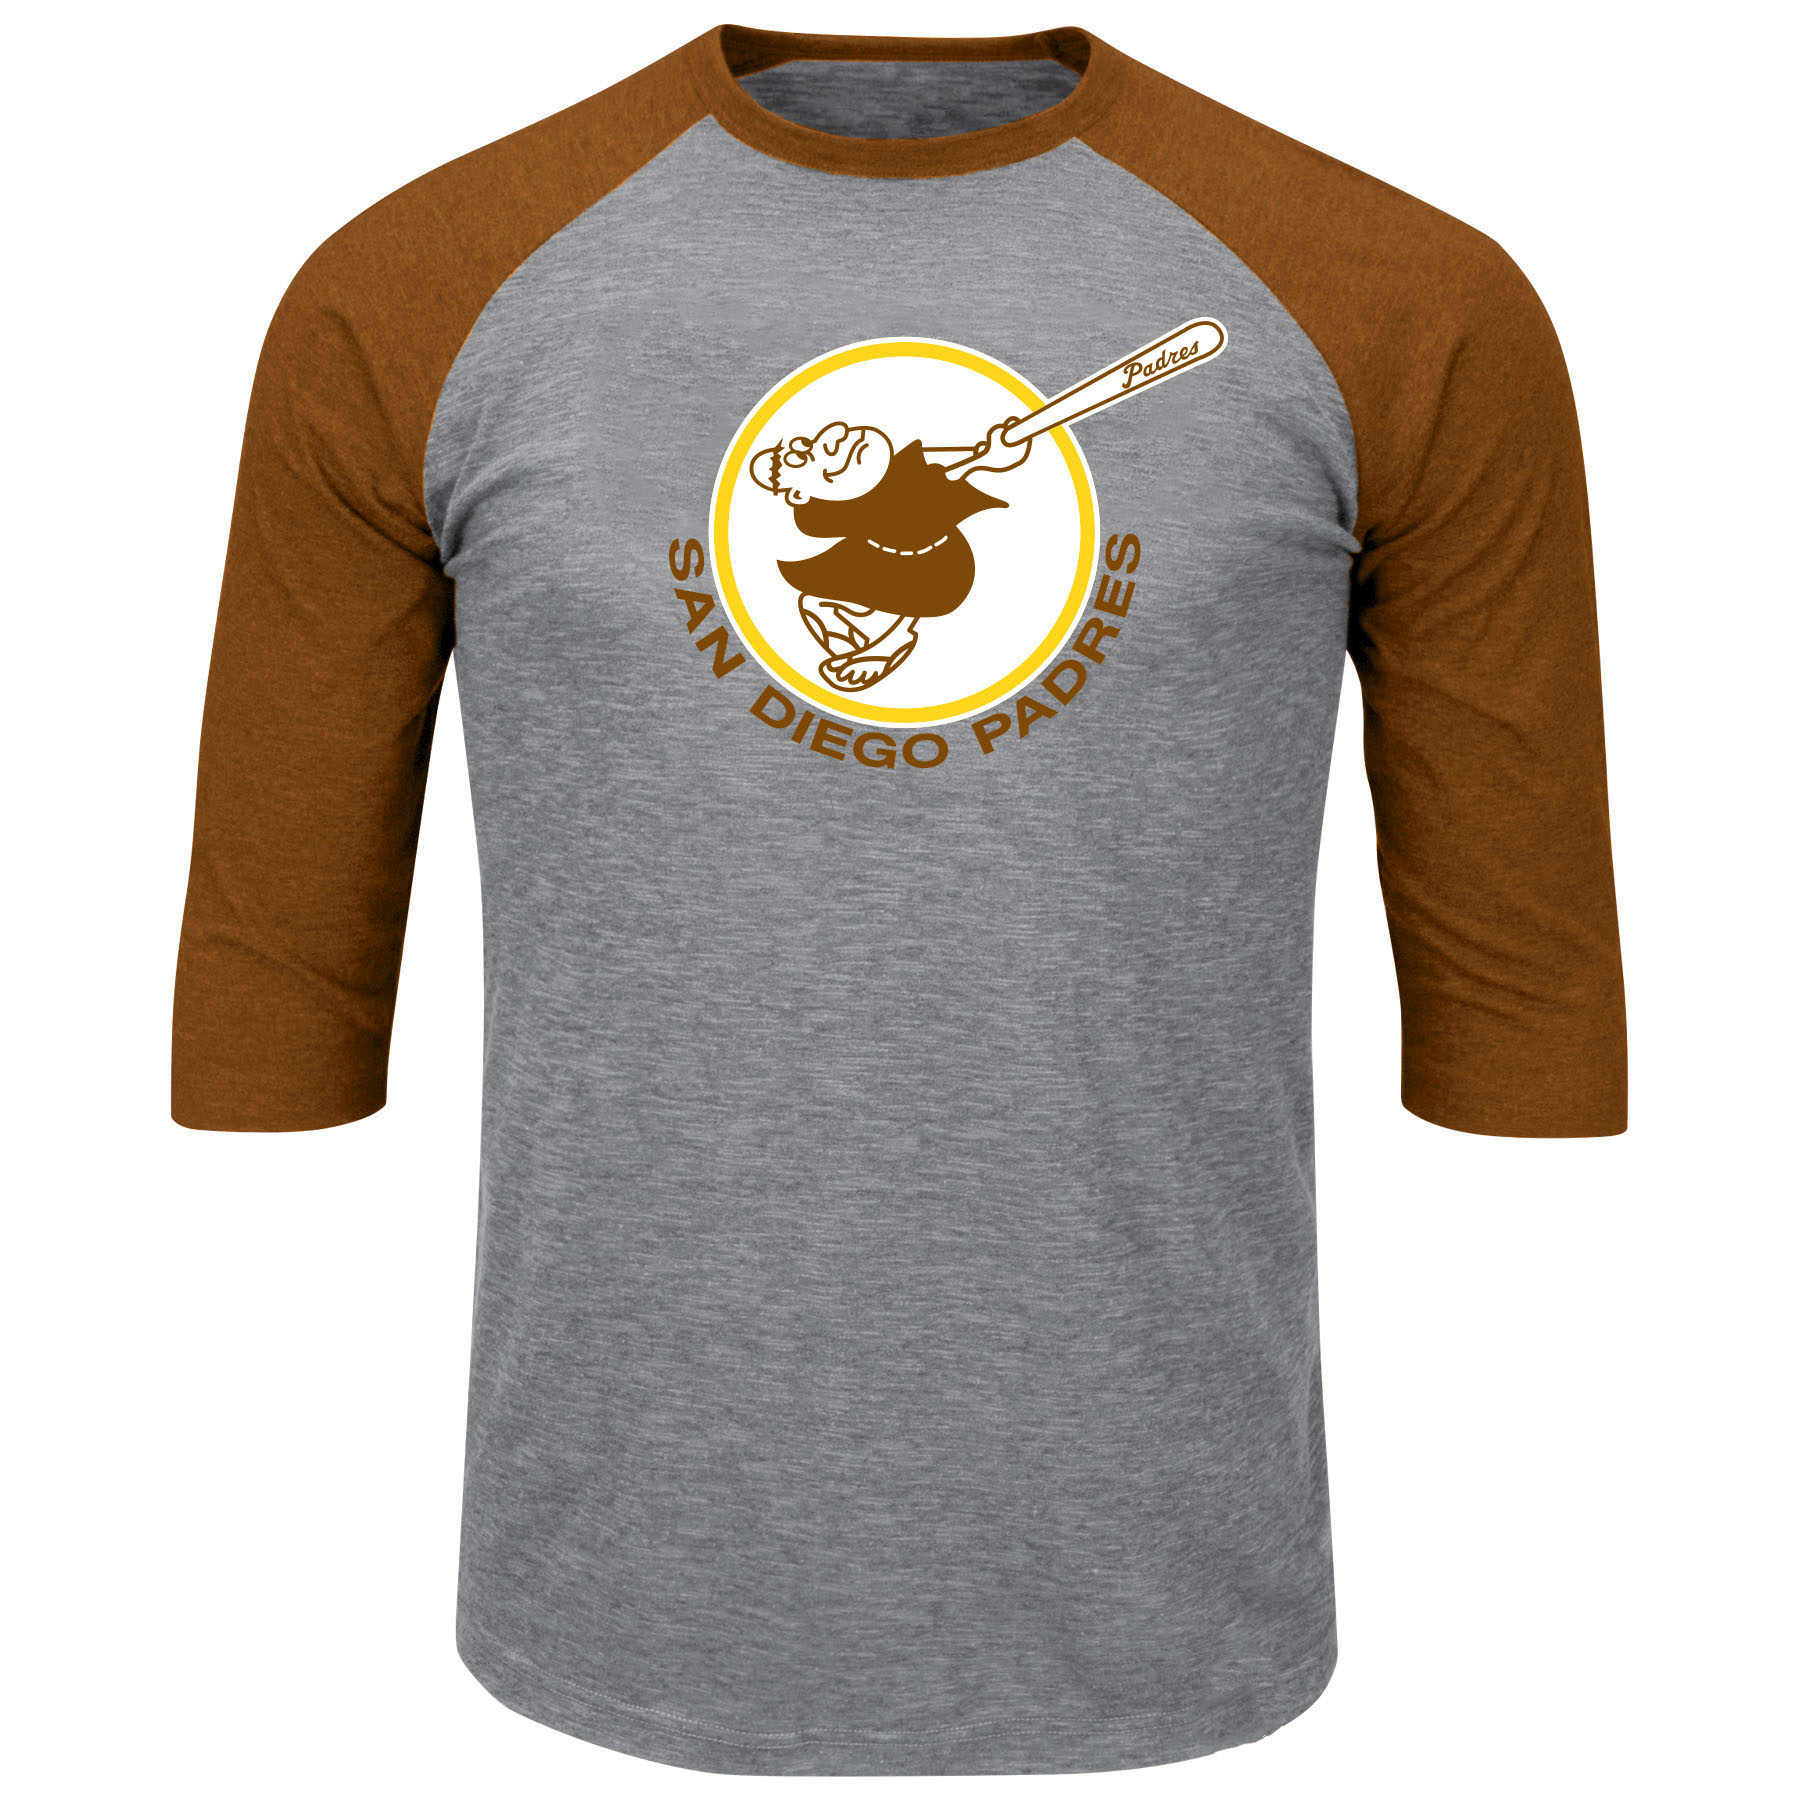 San Diego Padres Majestic Big & Tall Cooperstown Collection 3/4-Sleeve Raglan T-Shirt - Heathered Gray/Brown